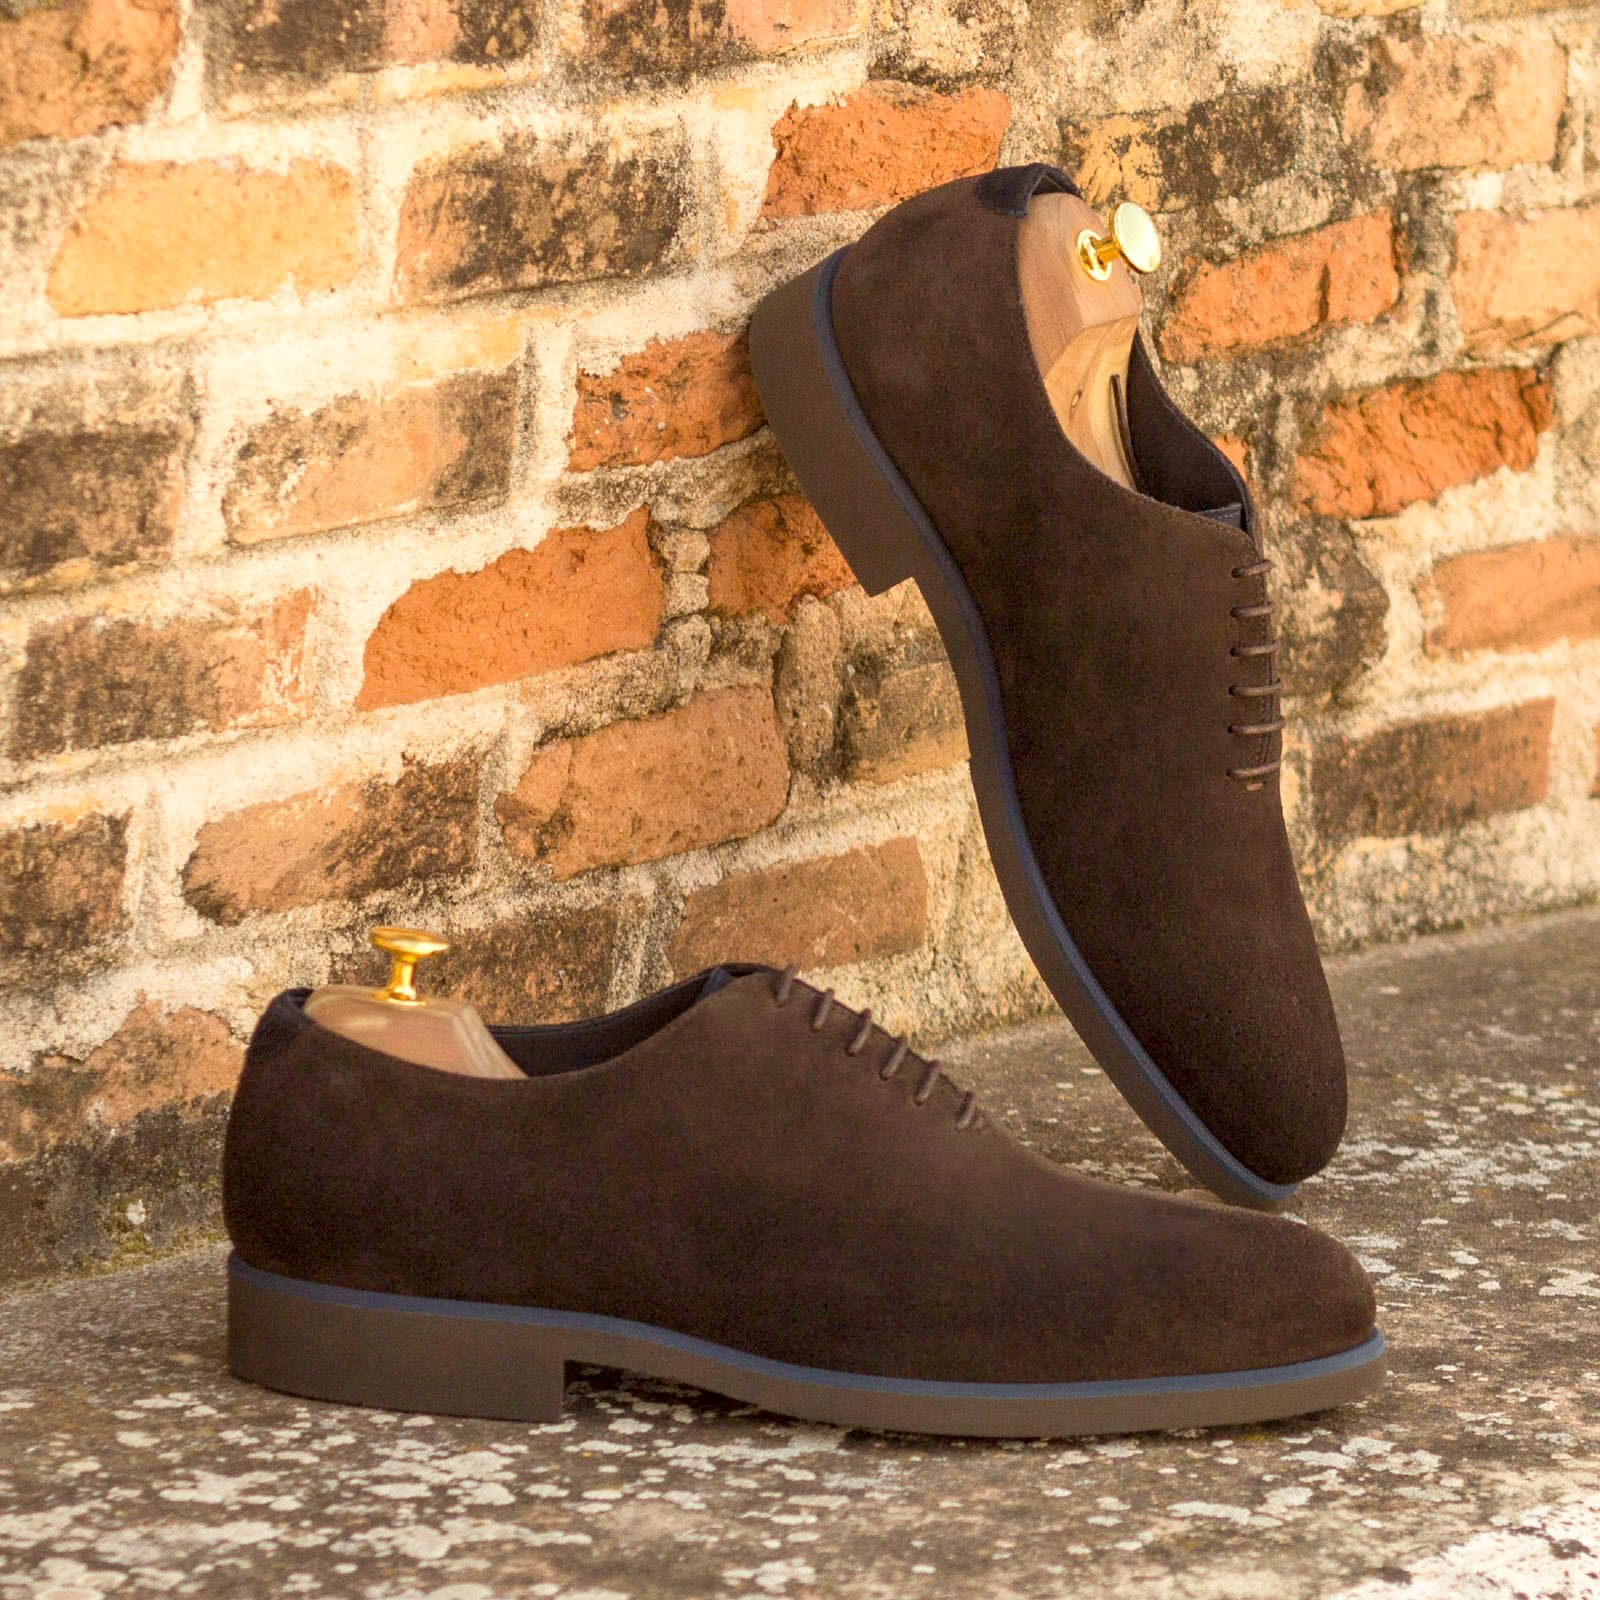 Whole cut dark brown lux suede + navy lux suede : 240€